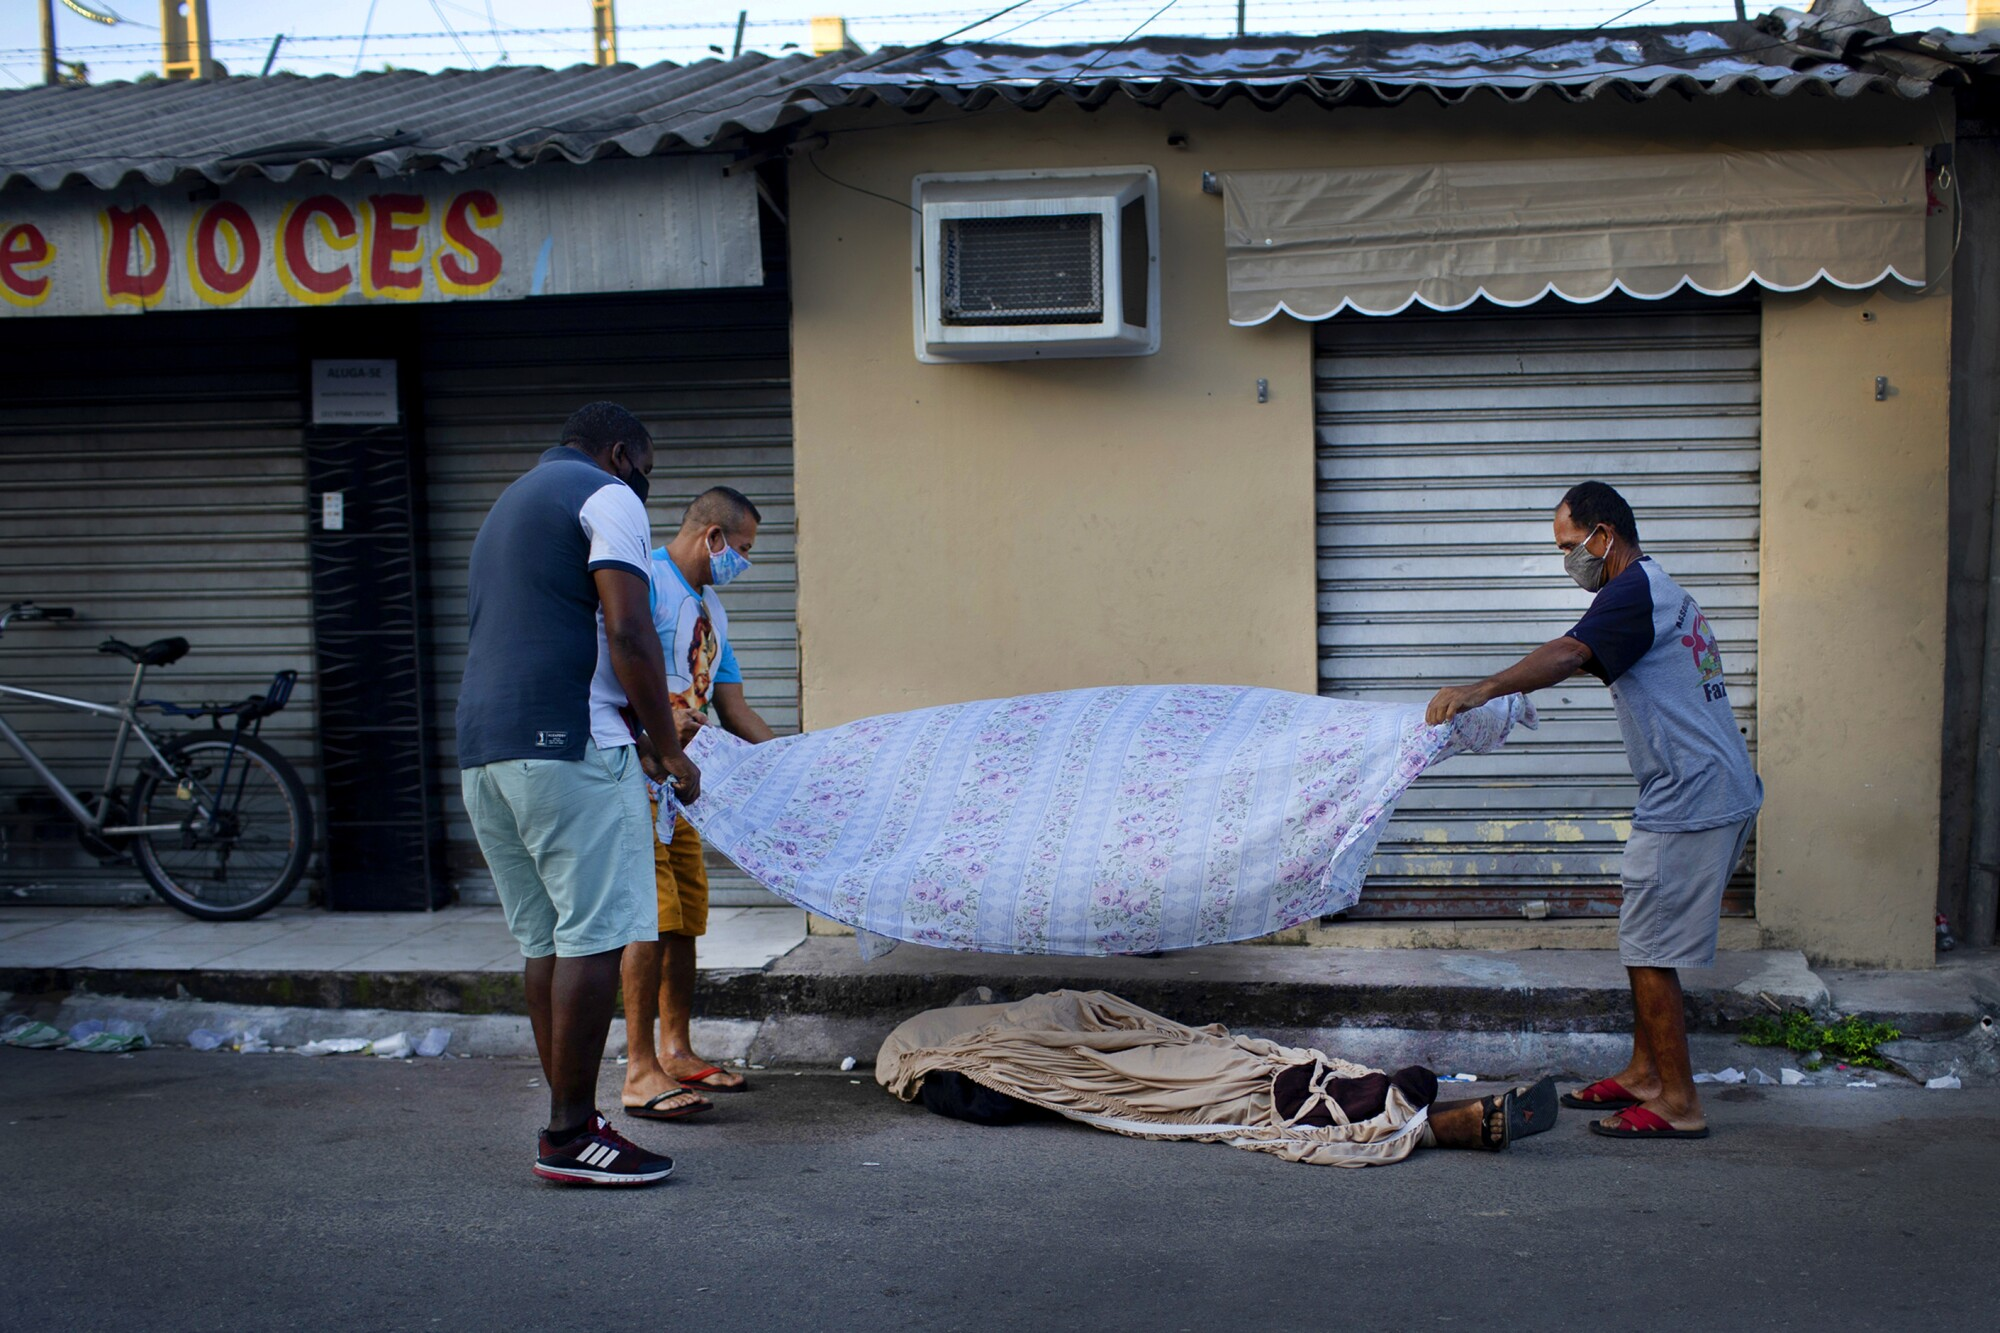 Neighbors cover the the body of 36-year-old Luiz Carlos Da Rocha, who died April 28 in Rio de Janeiro.